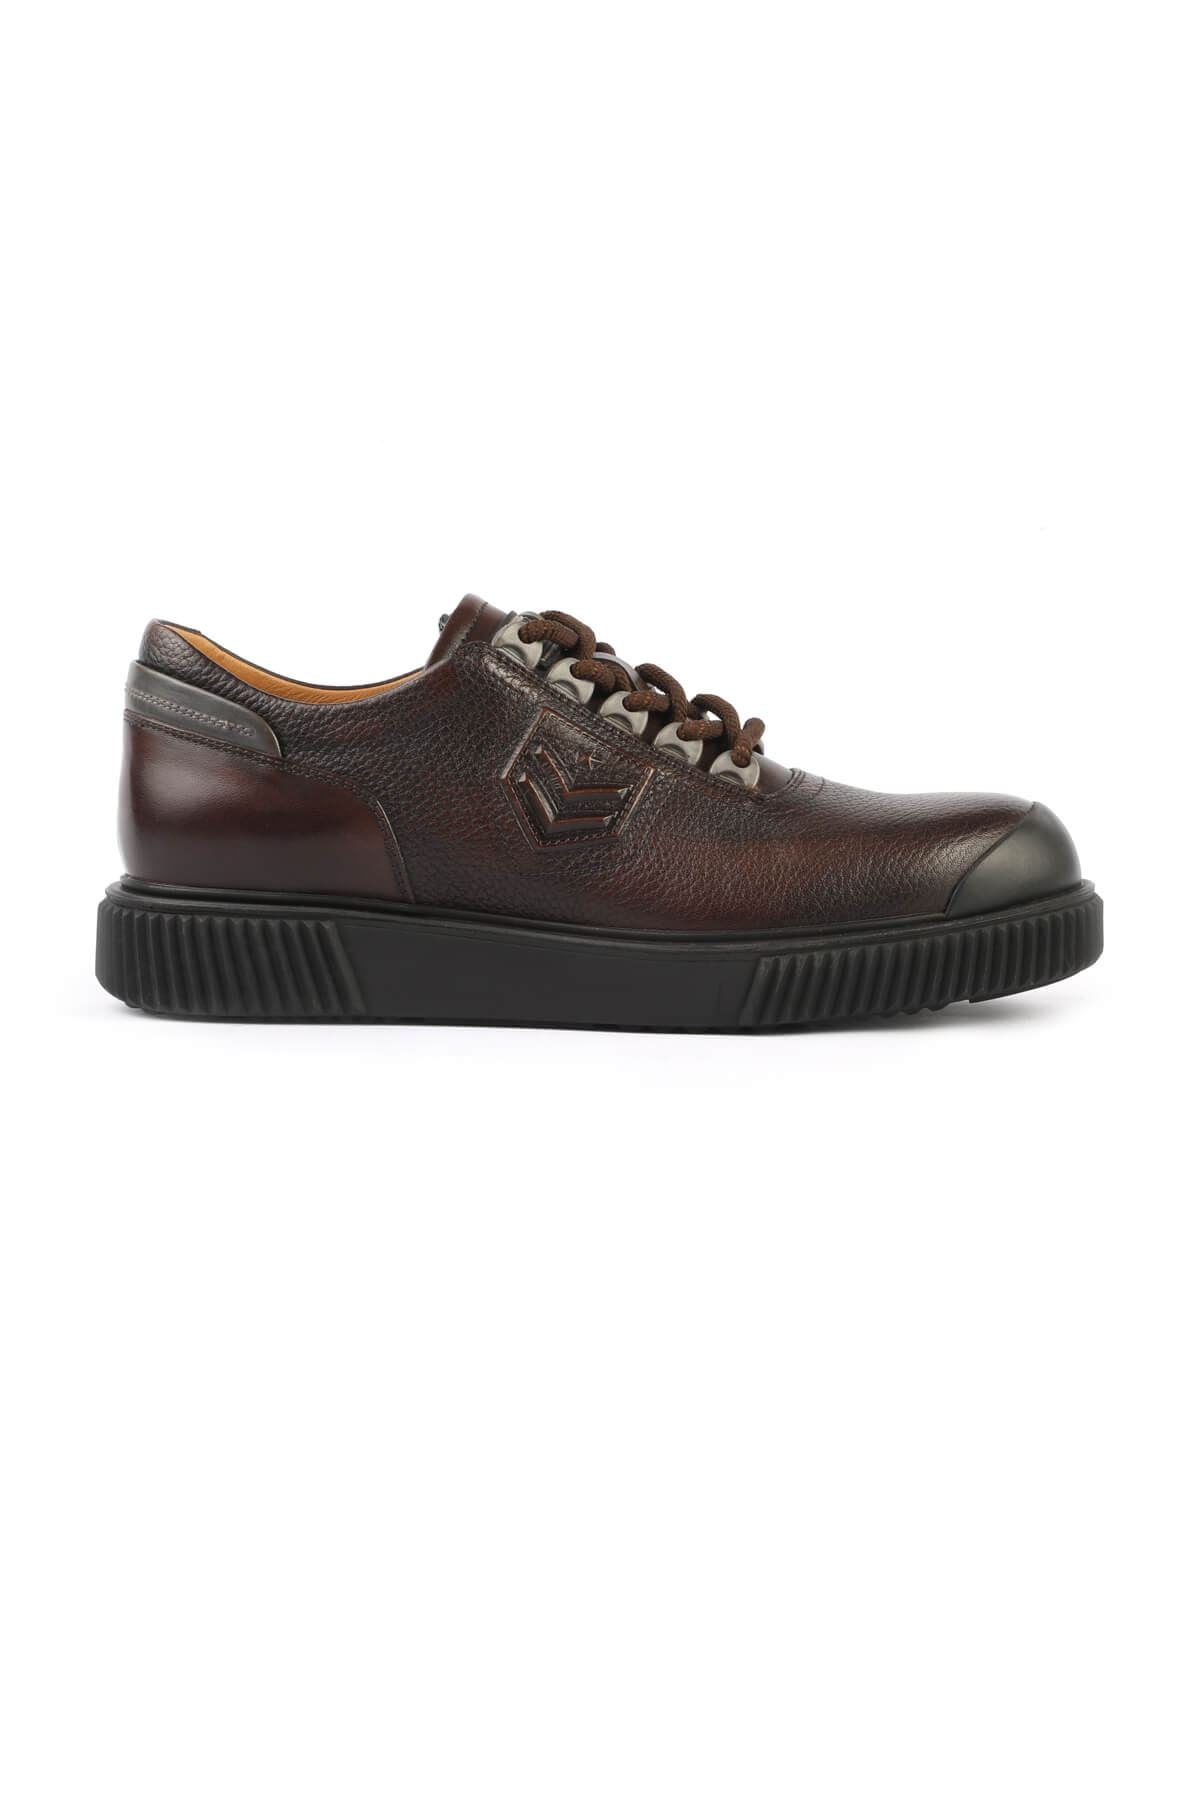 Libero 3175 Brown Casual Shoes